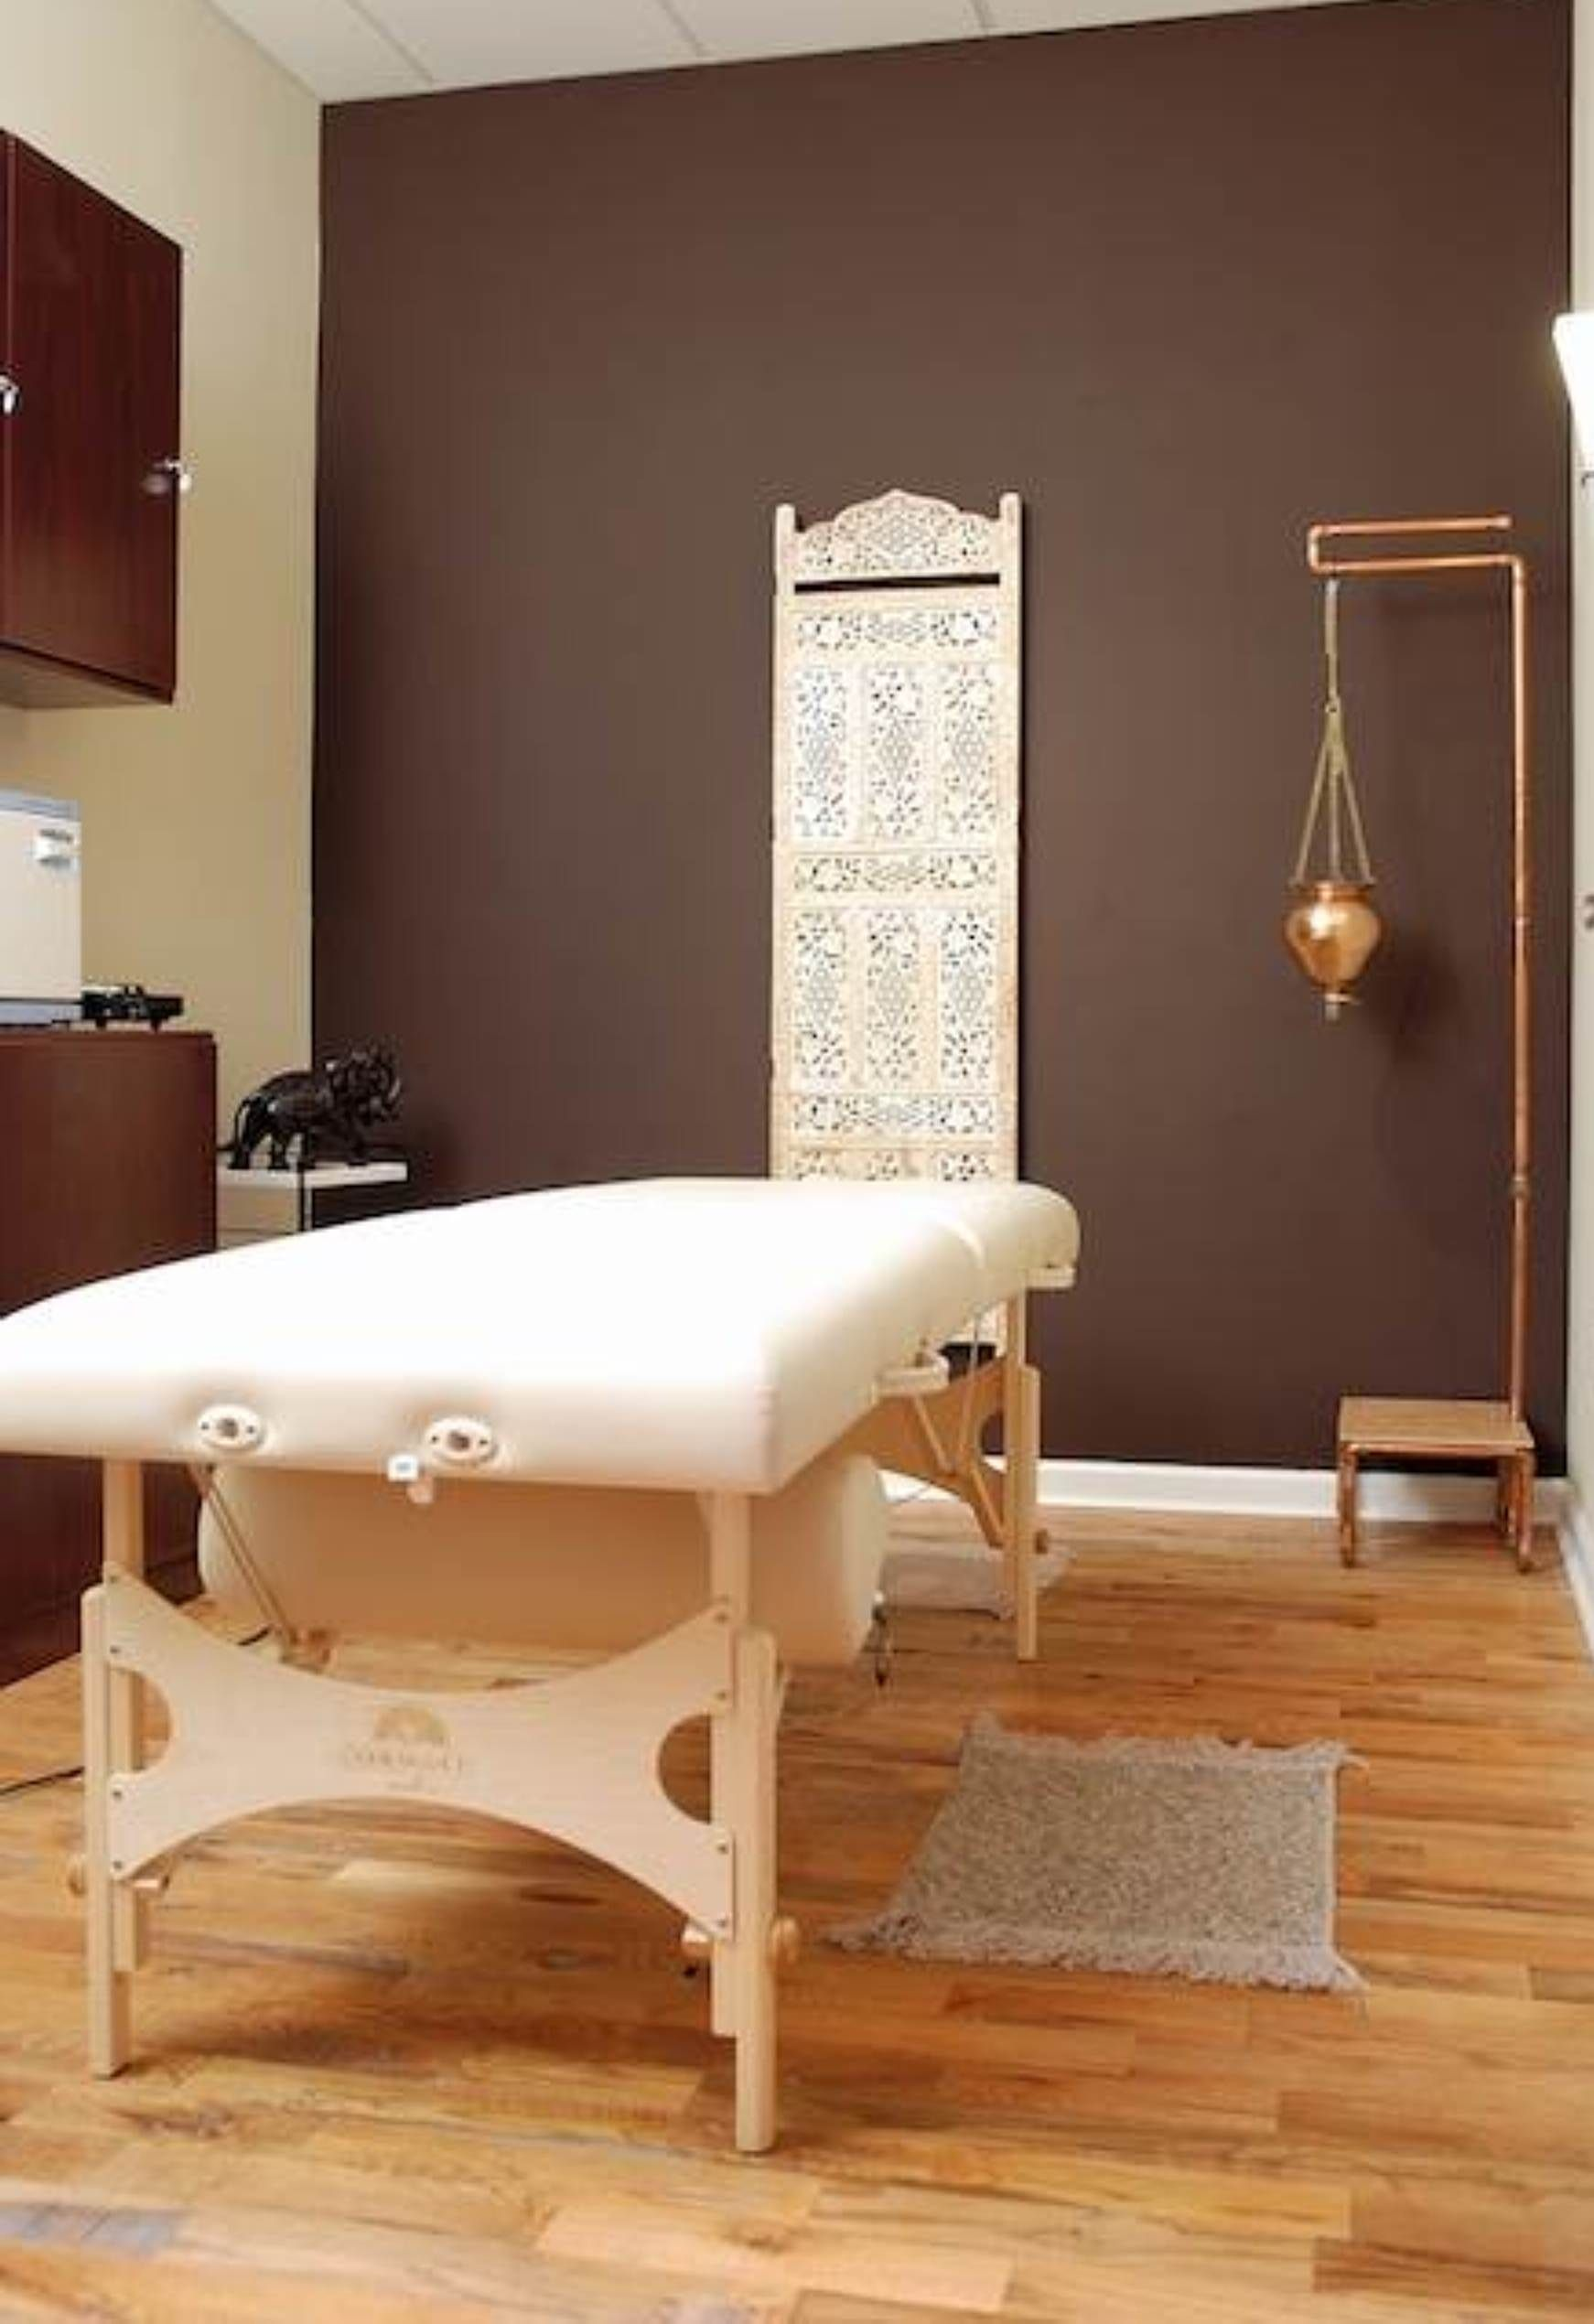 Delightful Small Massage Room Ideas | Previous Image Next Image